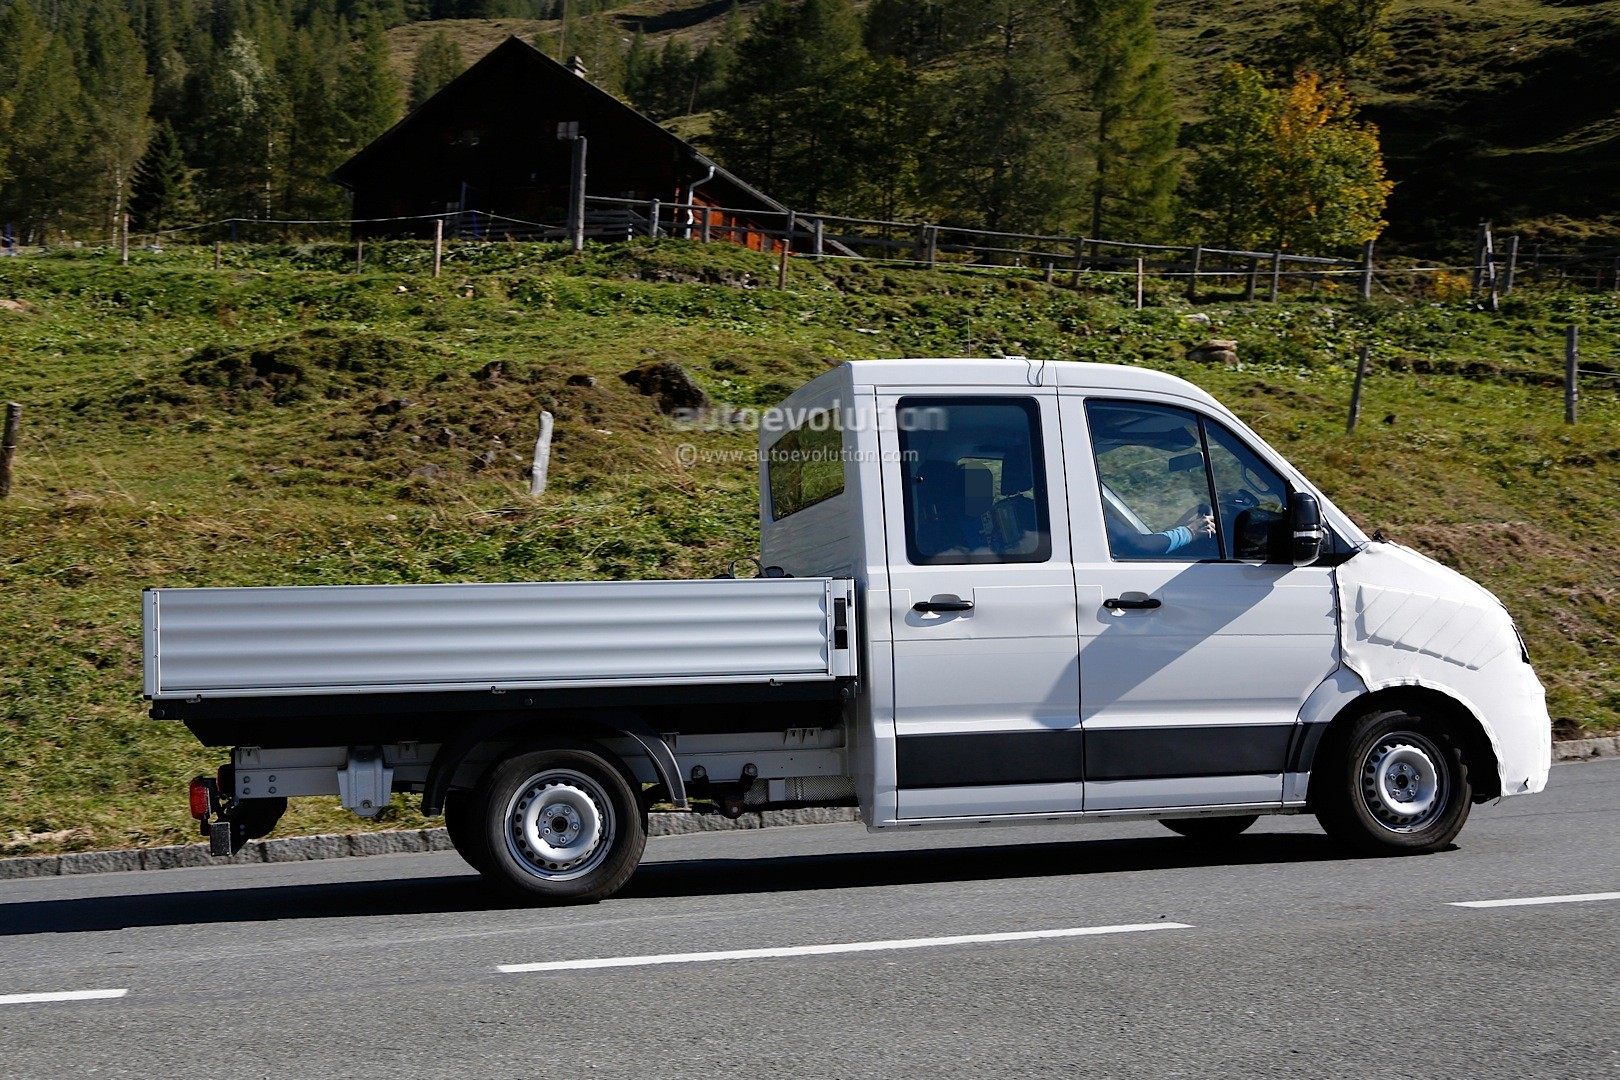 Spyshots: 2016 / 2017 Volkswagen Crafter Takes after the T6 ...